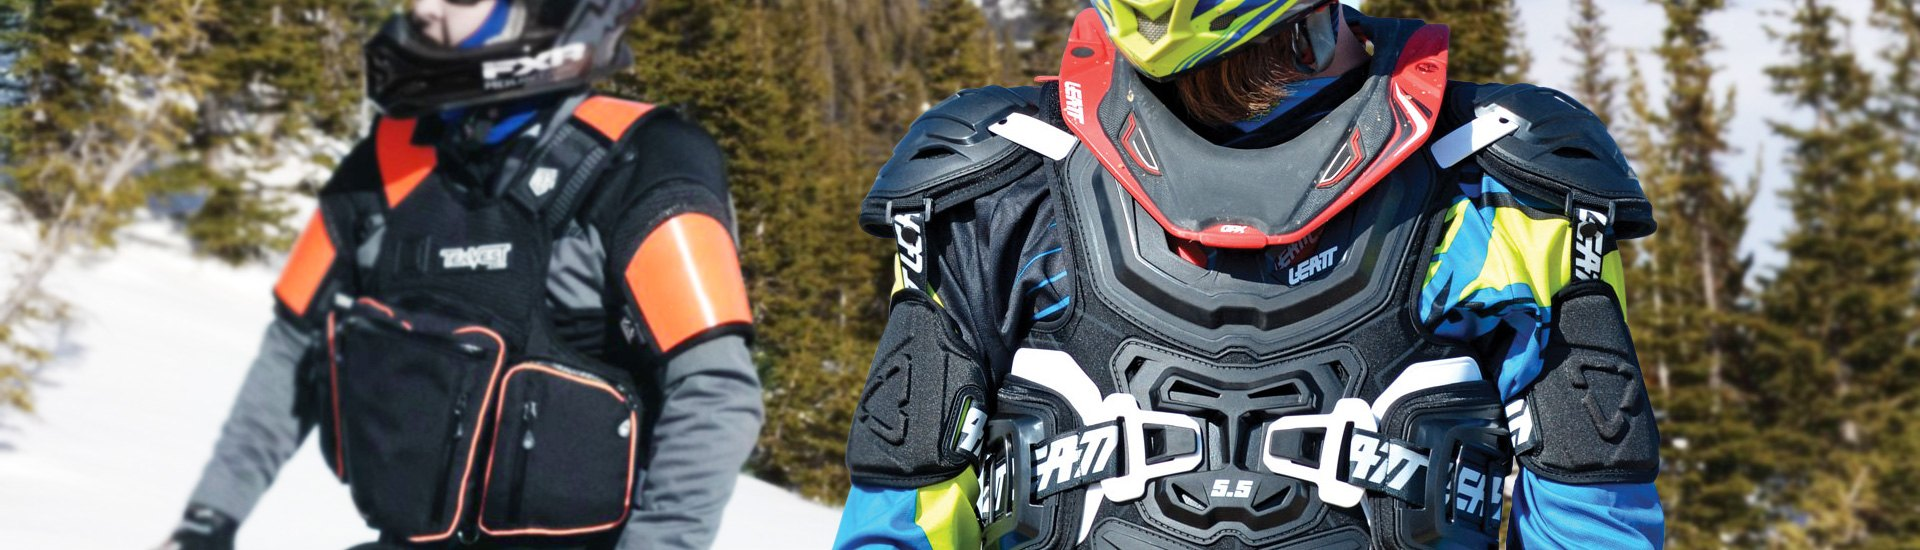 Snowmobile Body Armor & Protection | Boots, Goggles, Neck